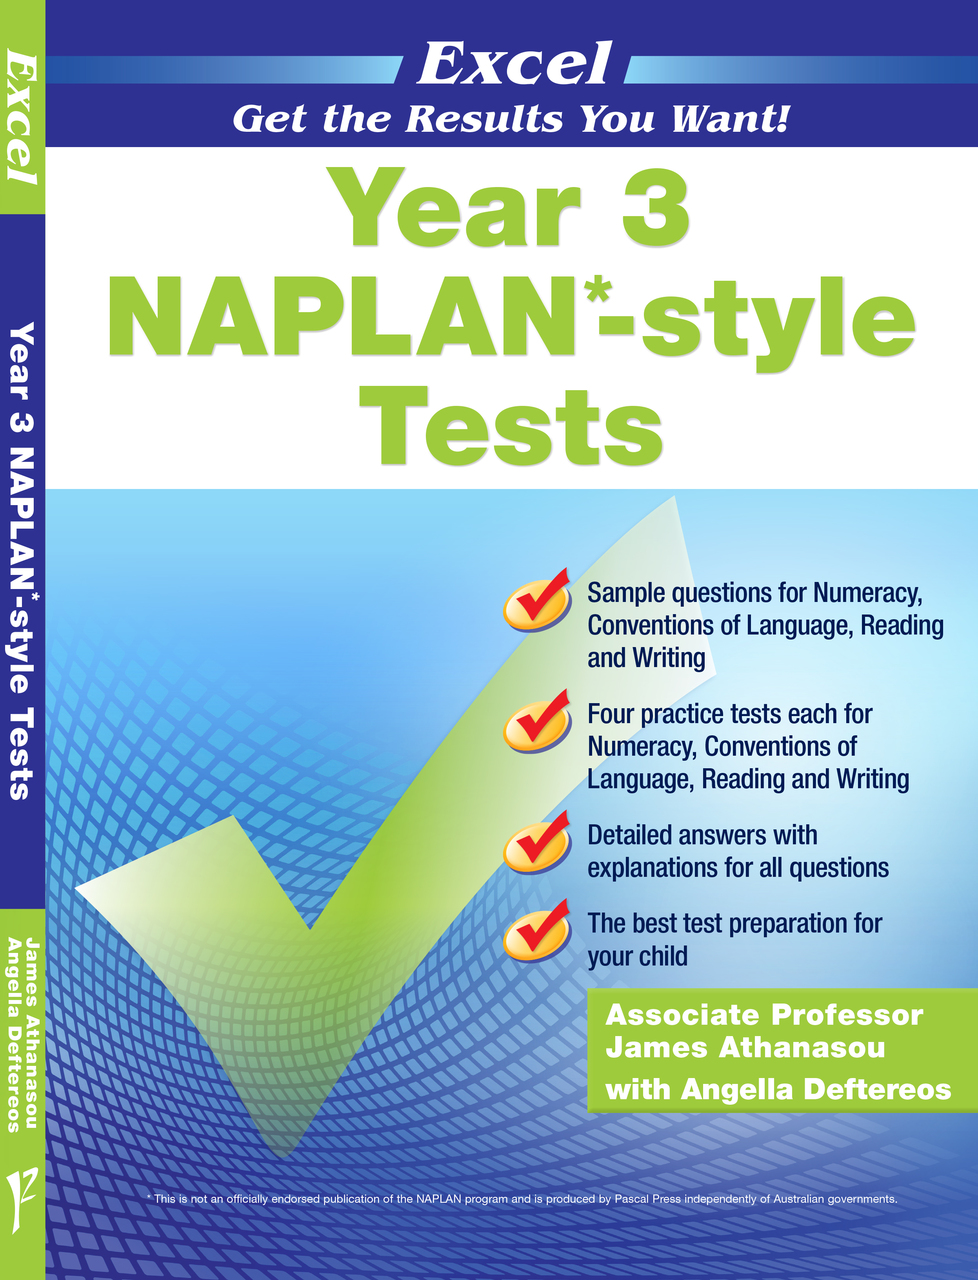 EXCEL - YEAR 3 NAPLAN*-STYLE TESTS